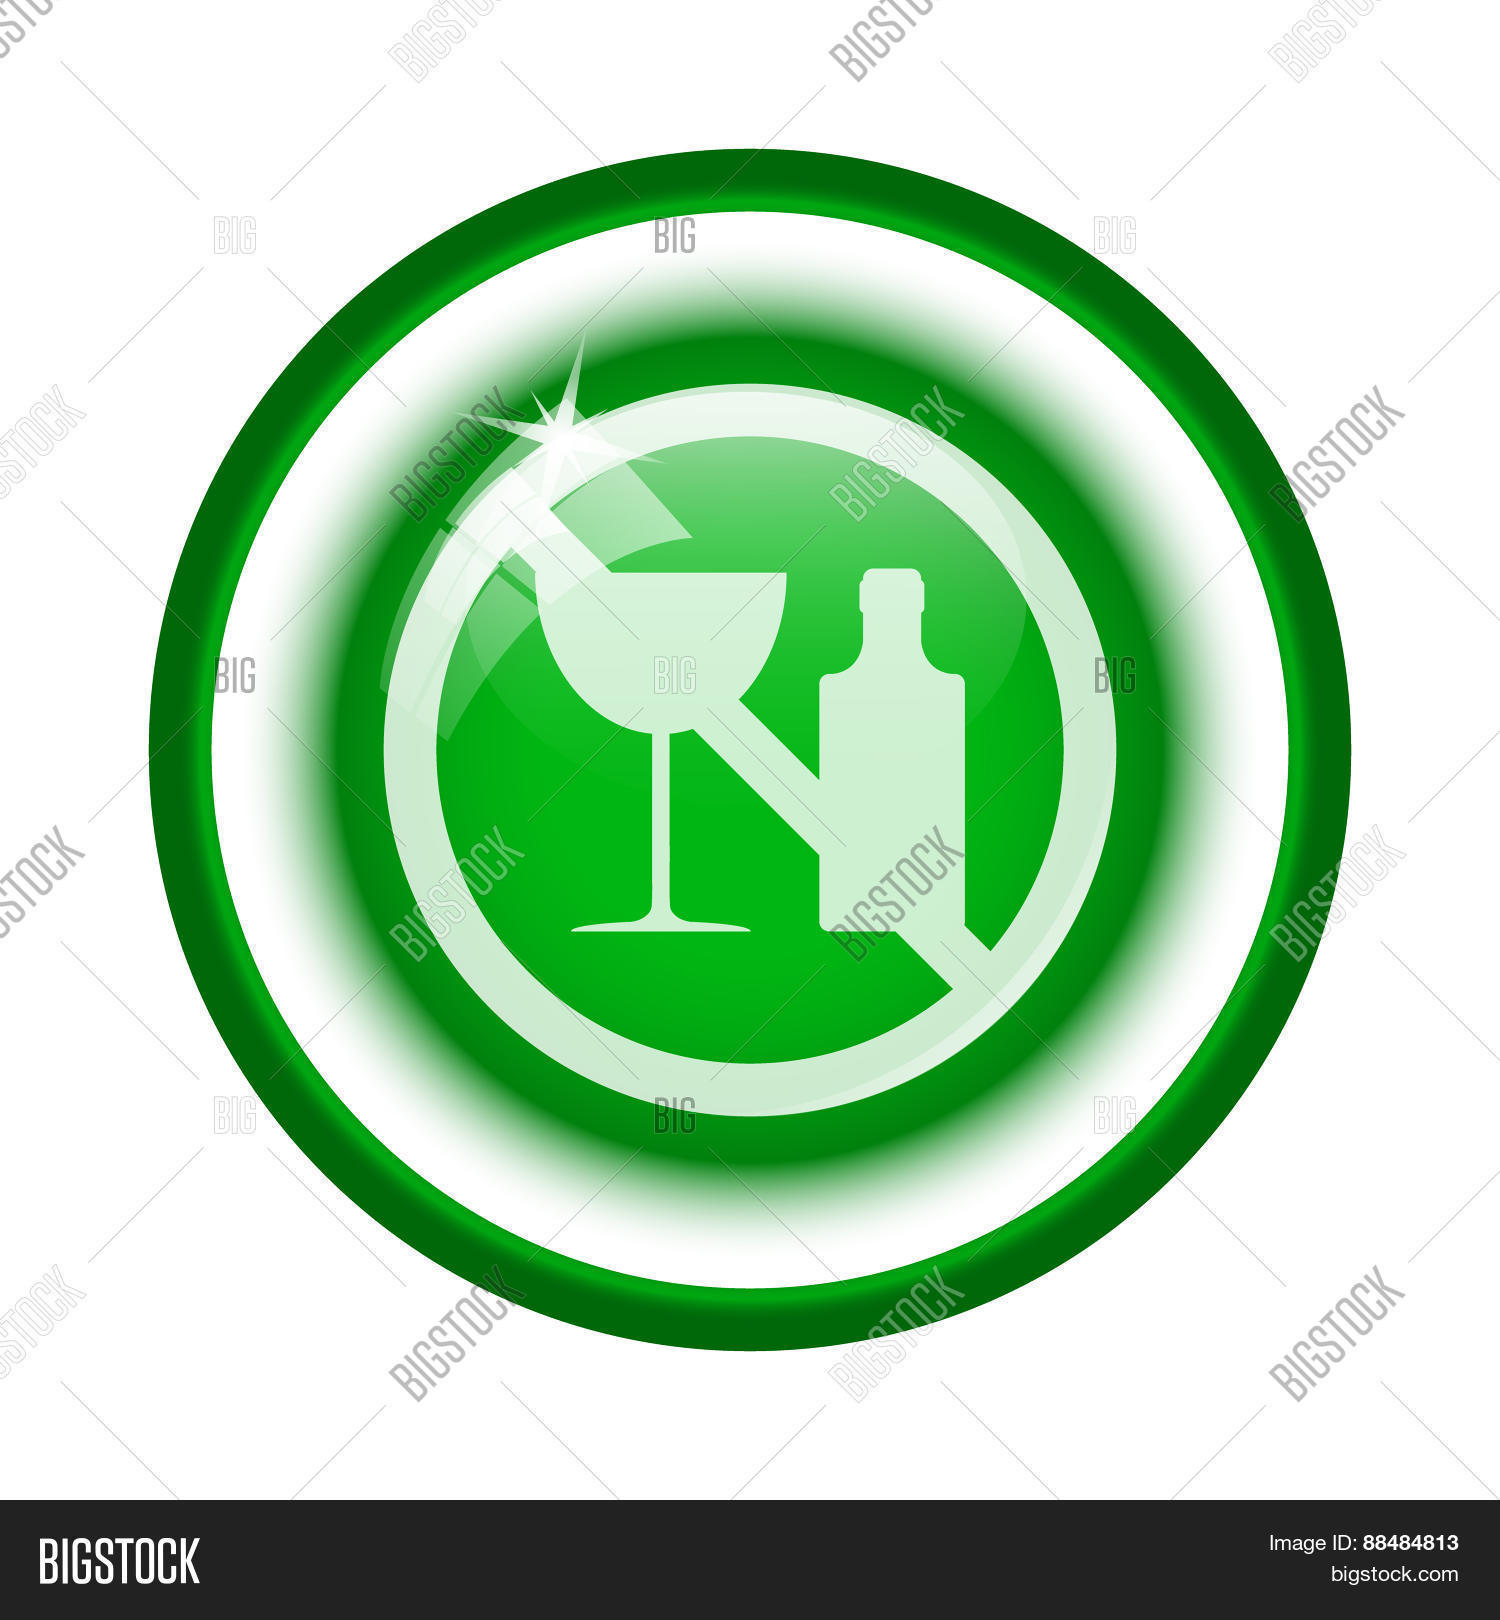 3d,abuse,alcohol,alcoholic,allowed,background,ban,banner,beer,beverage,bottle,business,button,danger,design,dont,drink,drinking,forbid,forbidden,glass,green,harm,icon,illustration,isolated,no,prohibit,prohibited,prohibition,restricted,restriction,risk,safety,sign,stop,symbol,warning,white